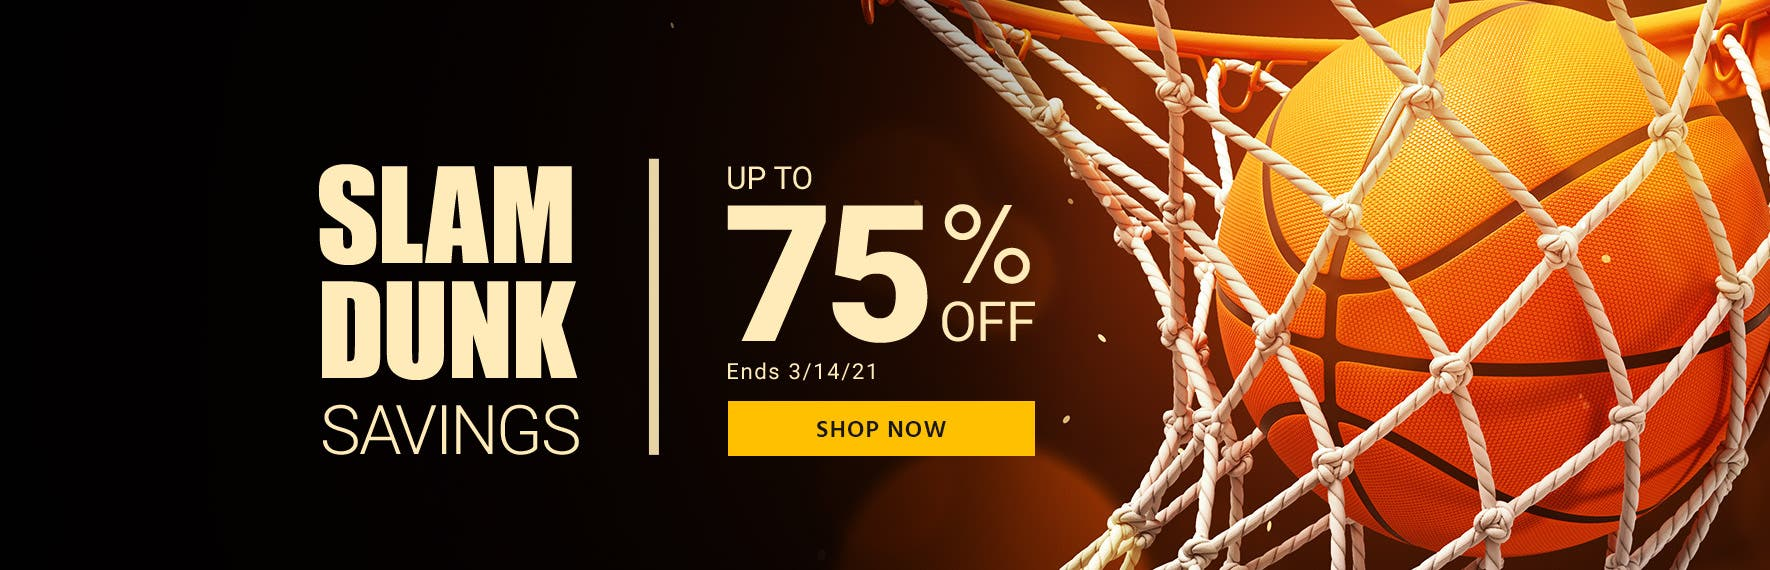 Slam Dunk Savings Up to 75% off